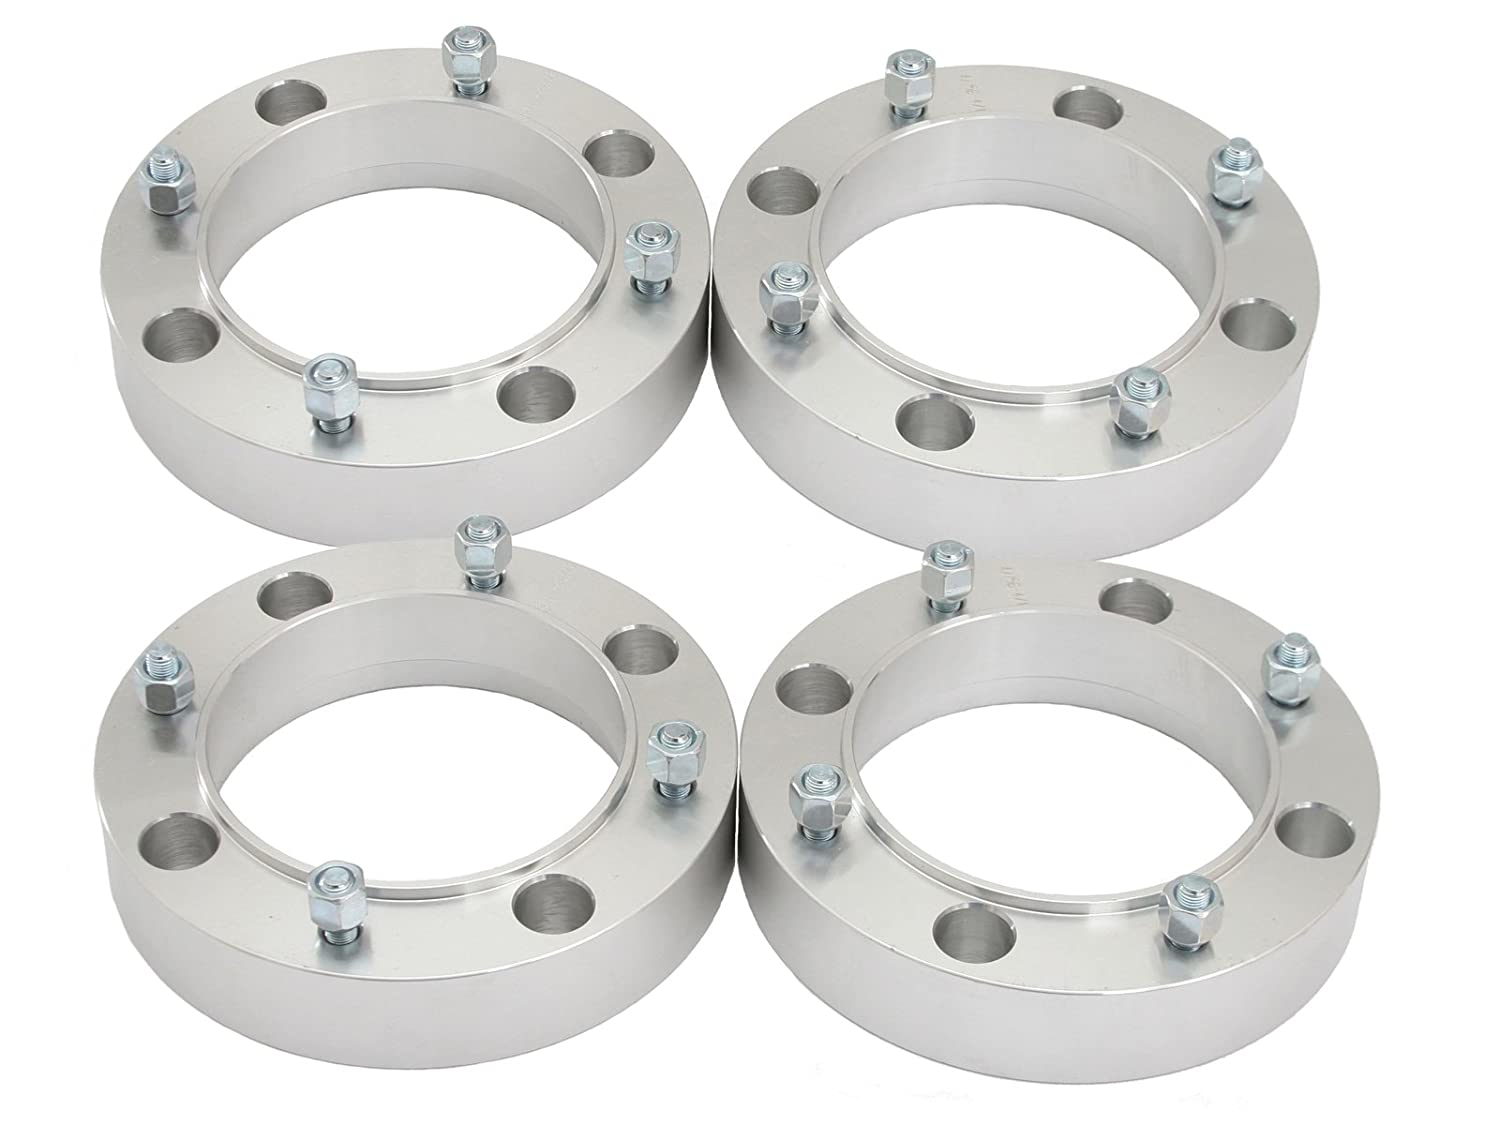 RockTrix for Precision European - 4pc 1' Thick 4x156 ATV Wheel Spacers with 3/8' Studs Nuts for many Polaris & Kawasaki: Predator Ranger RZR Sportsman XP Lakota Mojave Tecate (4/156) Silver Precision European Motorwerks